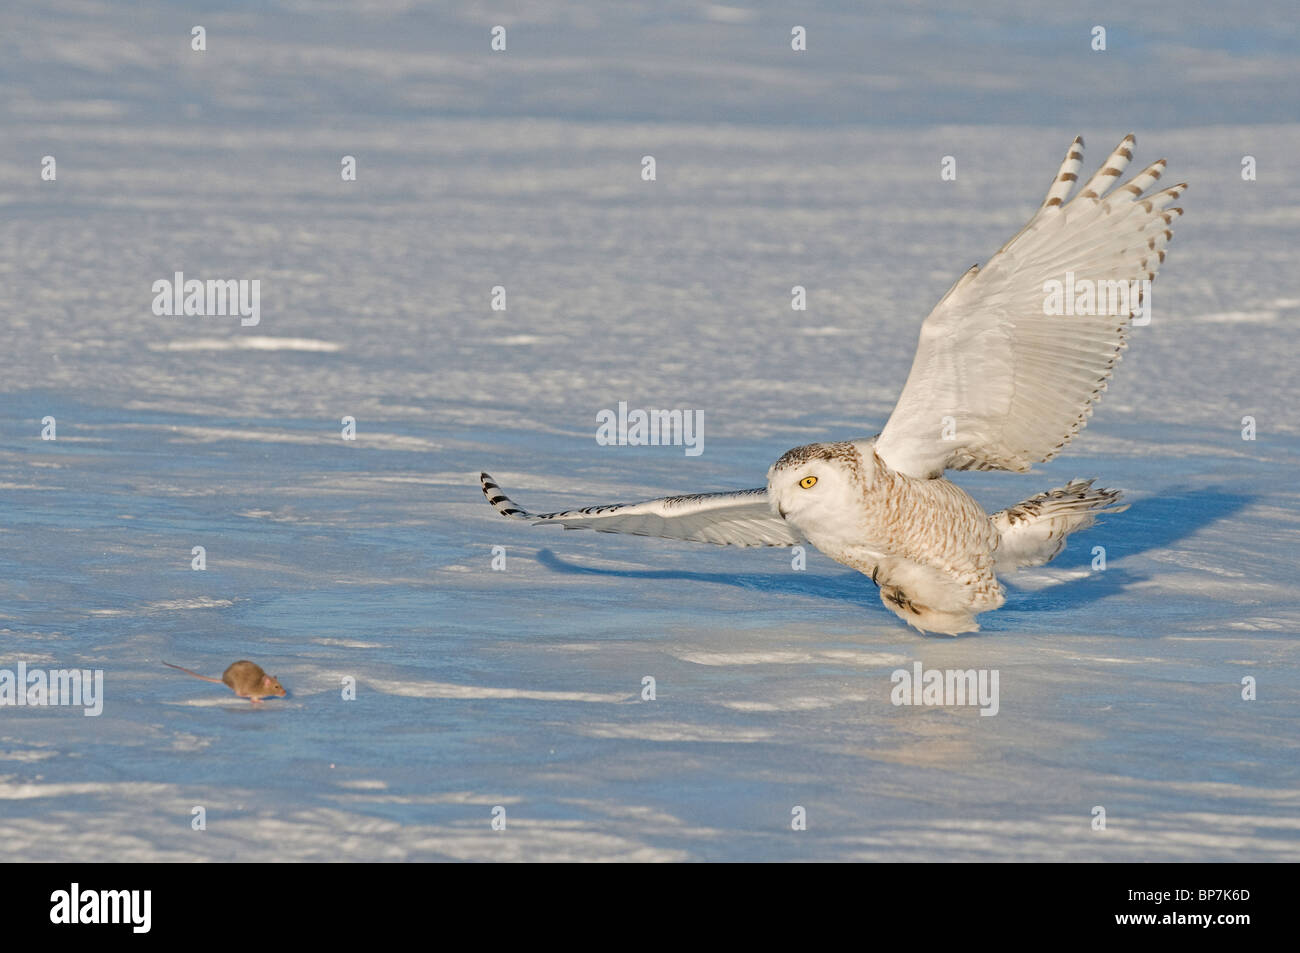 Snowy Owl (Bubo scandiacus, Nyctea scandiaca), adult about to catch a mouse. - Stock Image